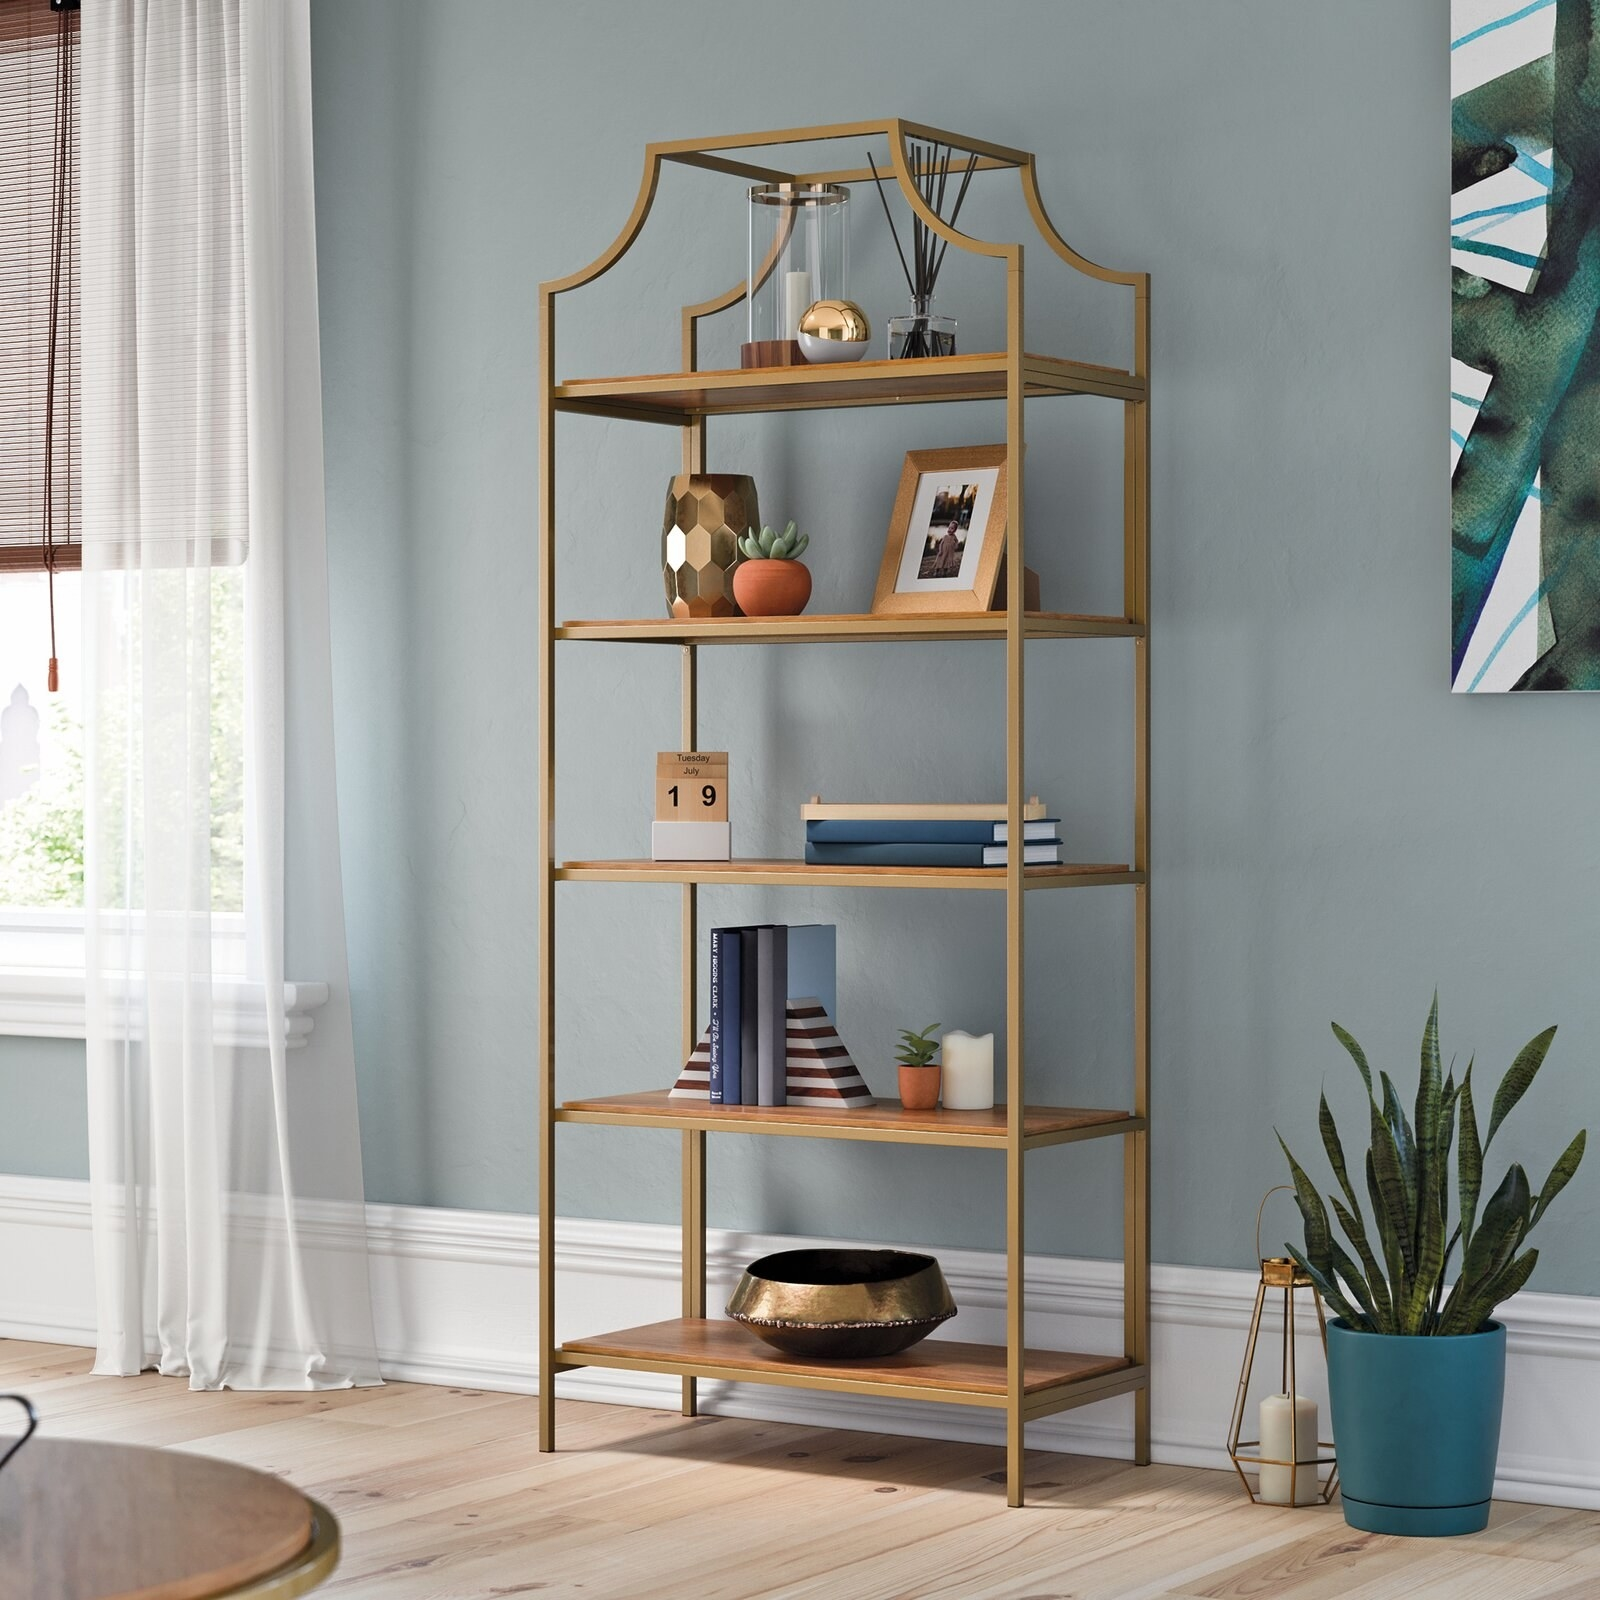 The bookshelf, which has five wooden shelves on an open metal frame, with an arched crown flourish on top